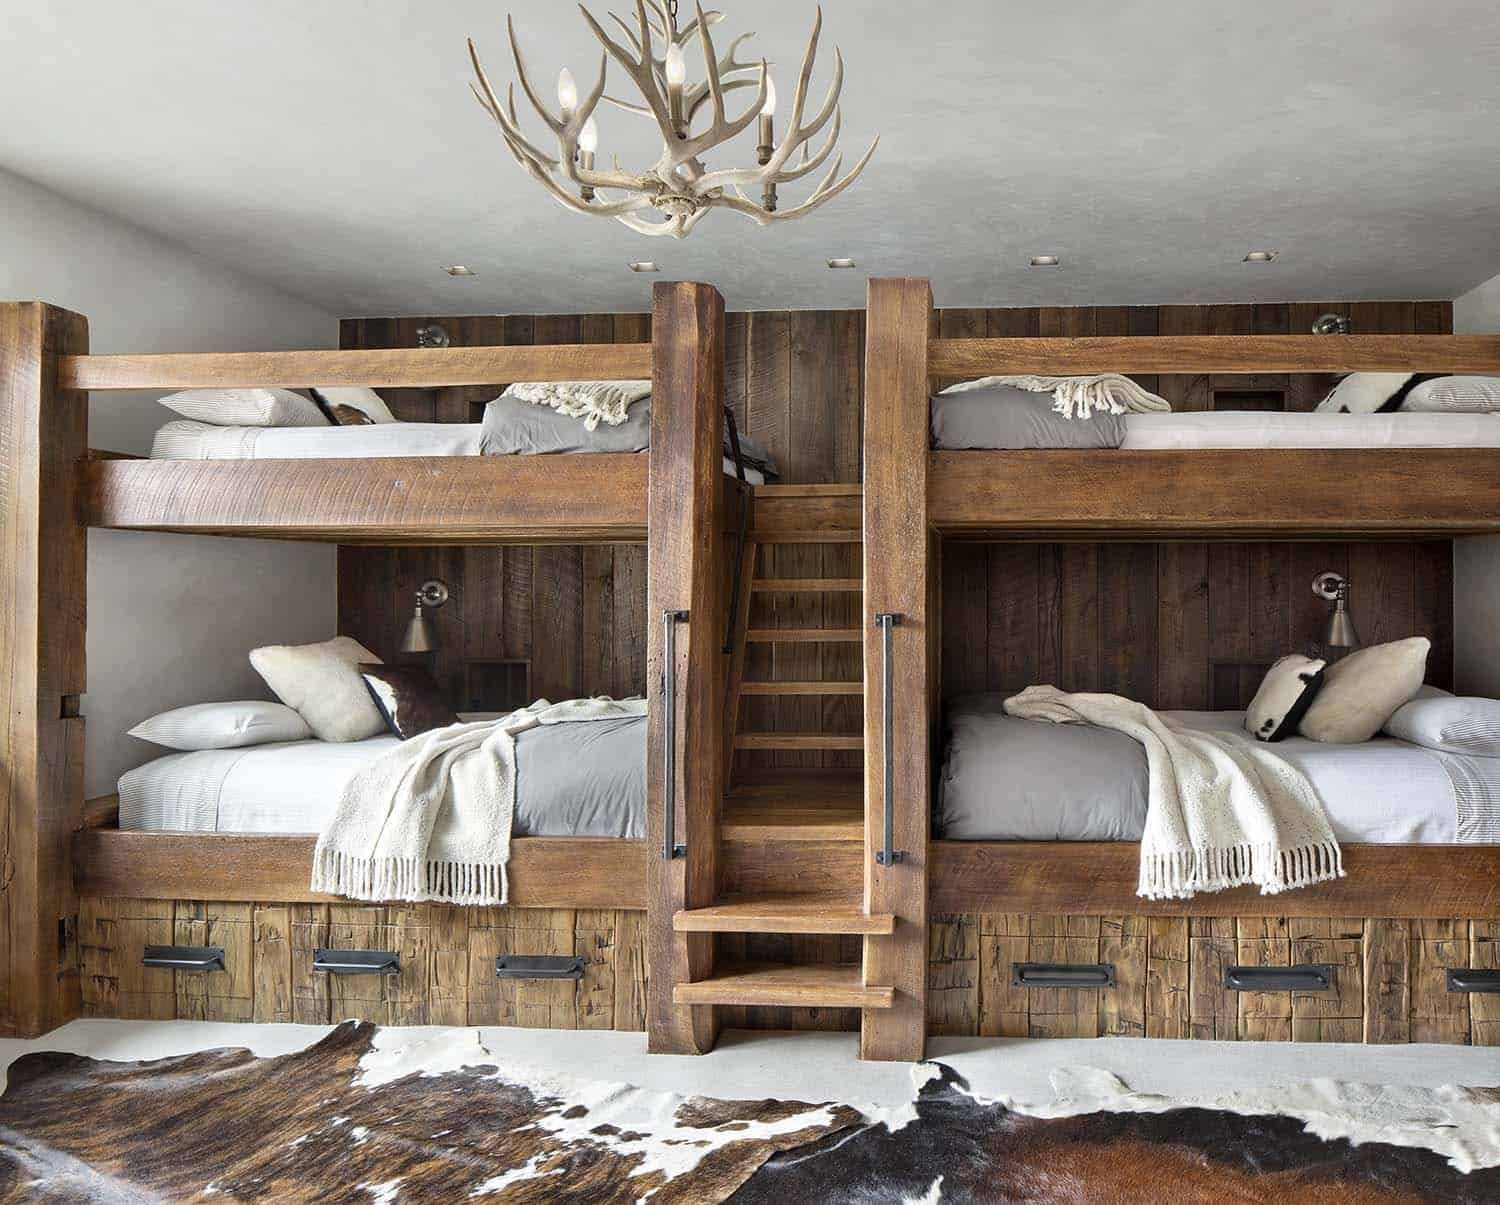 Modern Rustic Home Set Amidst The Grandeur Of The Rocky Mountains Bunk Beds Built In Rustic House Modern Rustic Homes